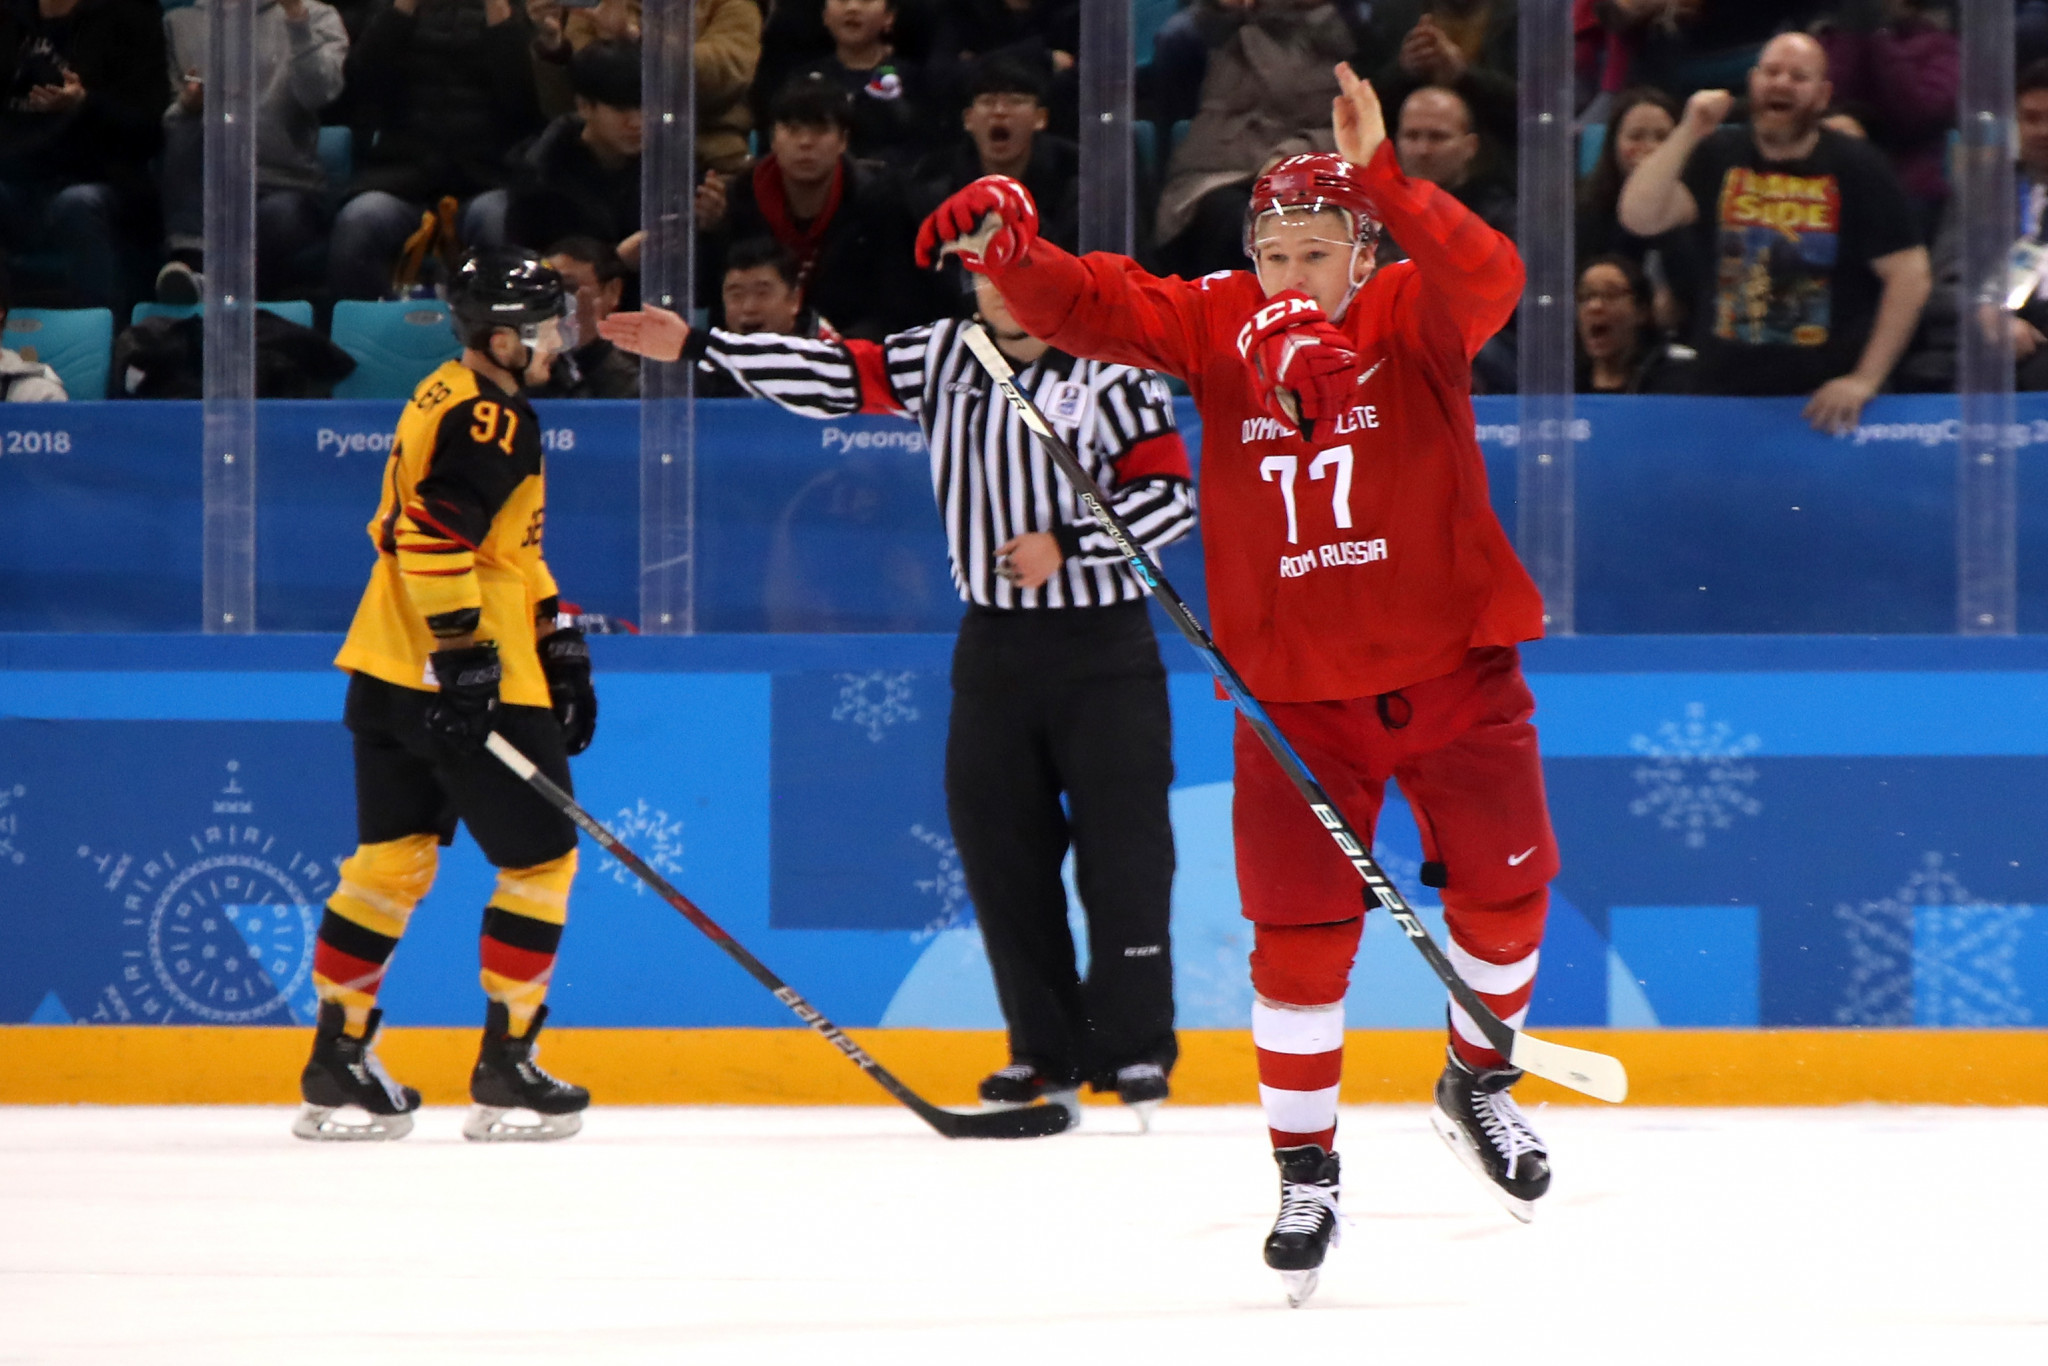 Kirill Kaprizov scored an overtime winner as the Olympic Athletes from Russia claimed victory over Germany in the men's ice hockey final here at Pyeongchang 2018 ©Getty Images